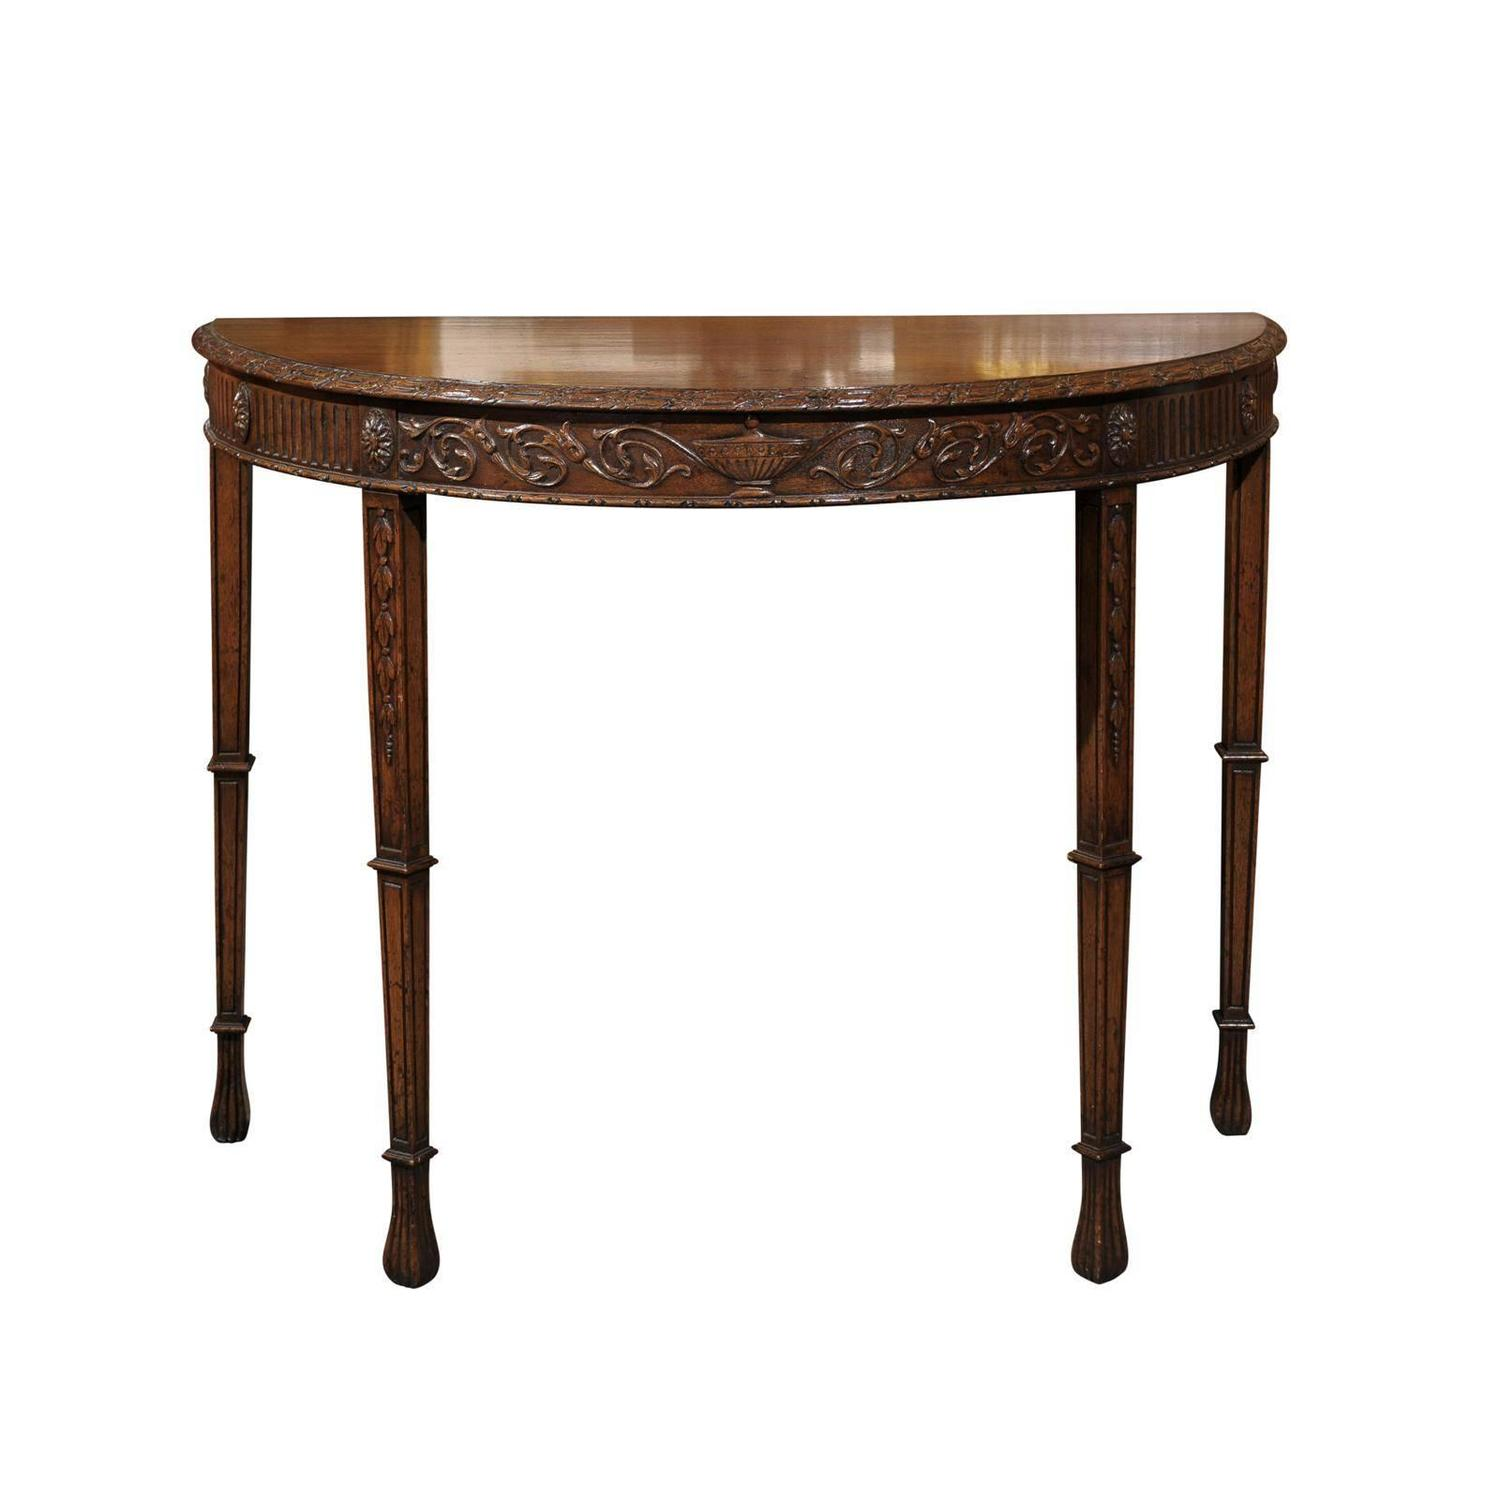 english demilune table for sale at 1stdibs. Black Bedroom Furniture Sets. Home Design Ideas